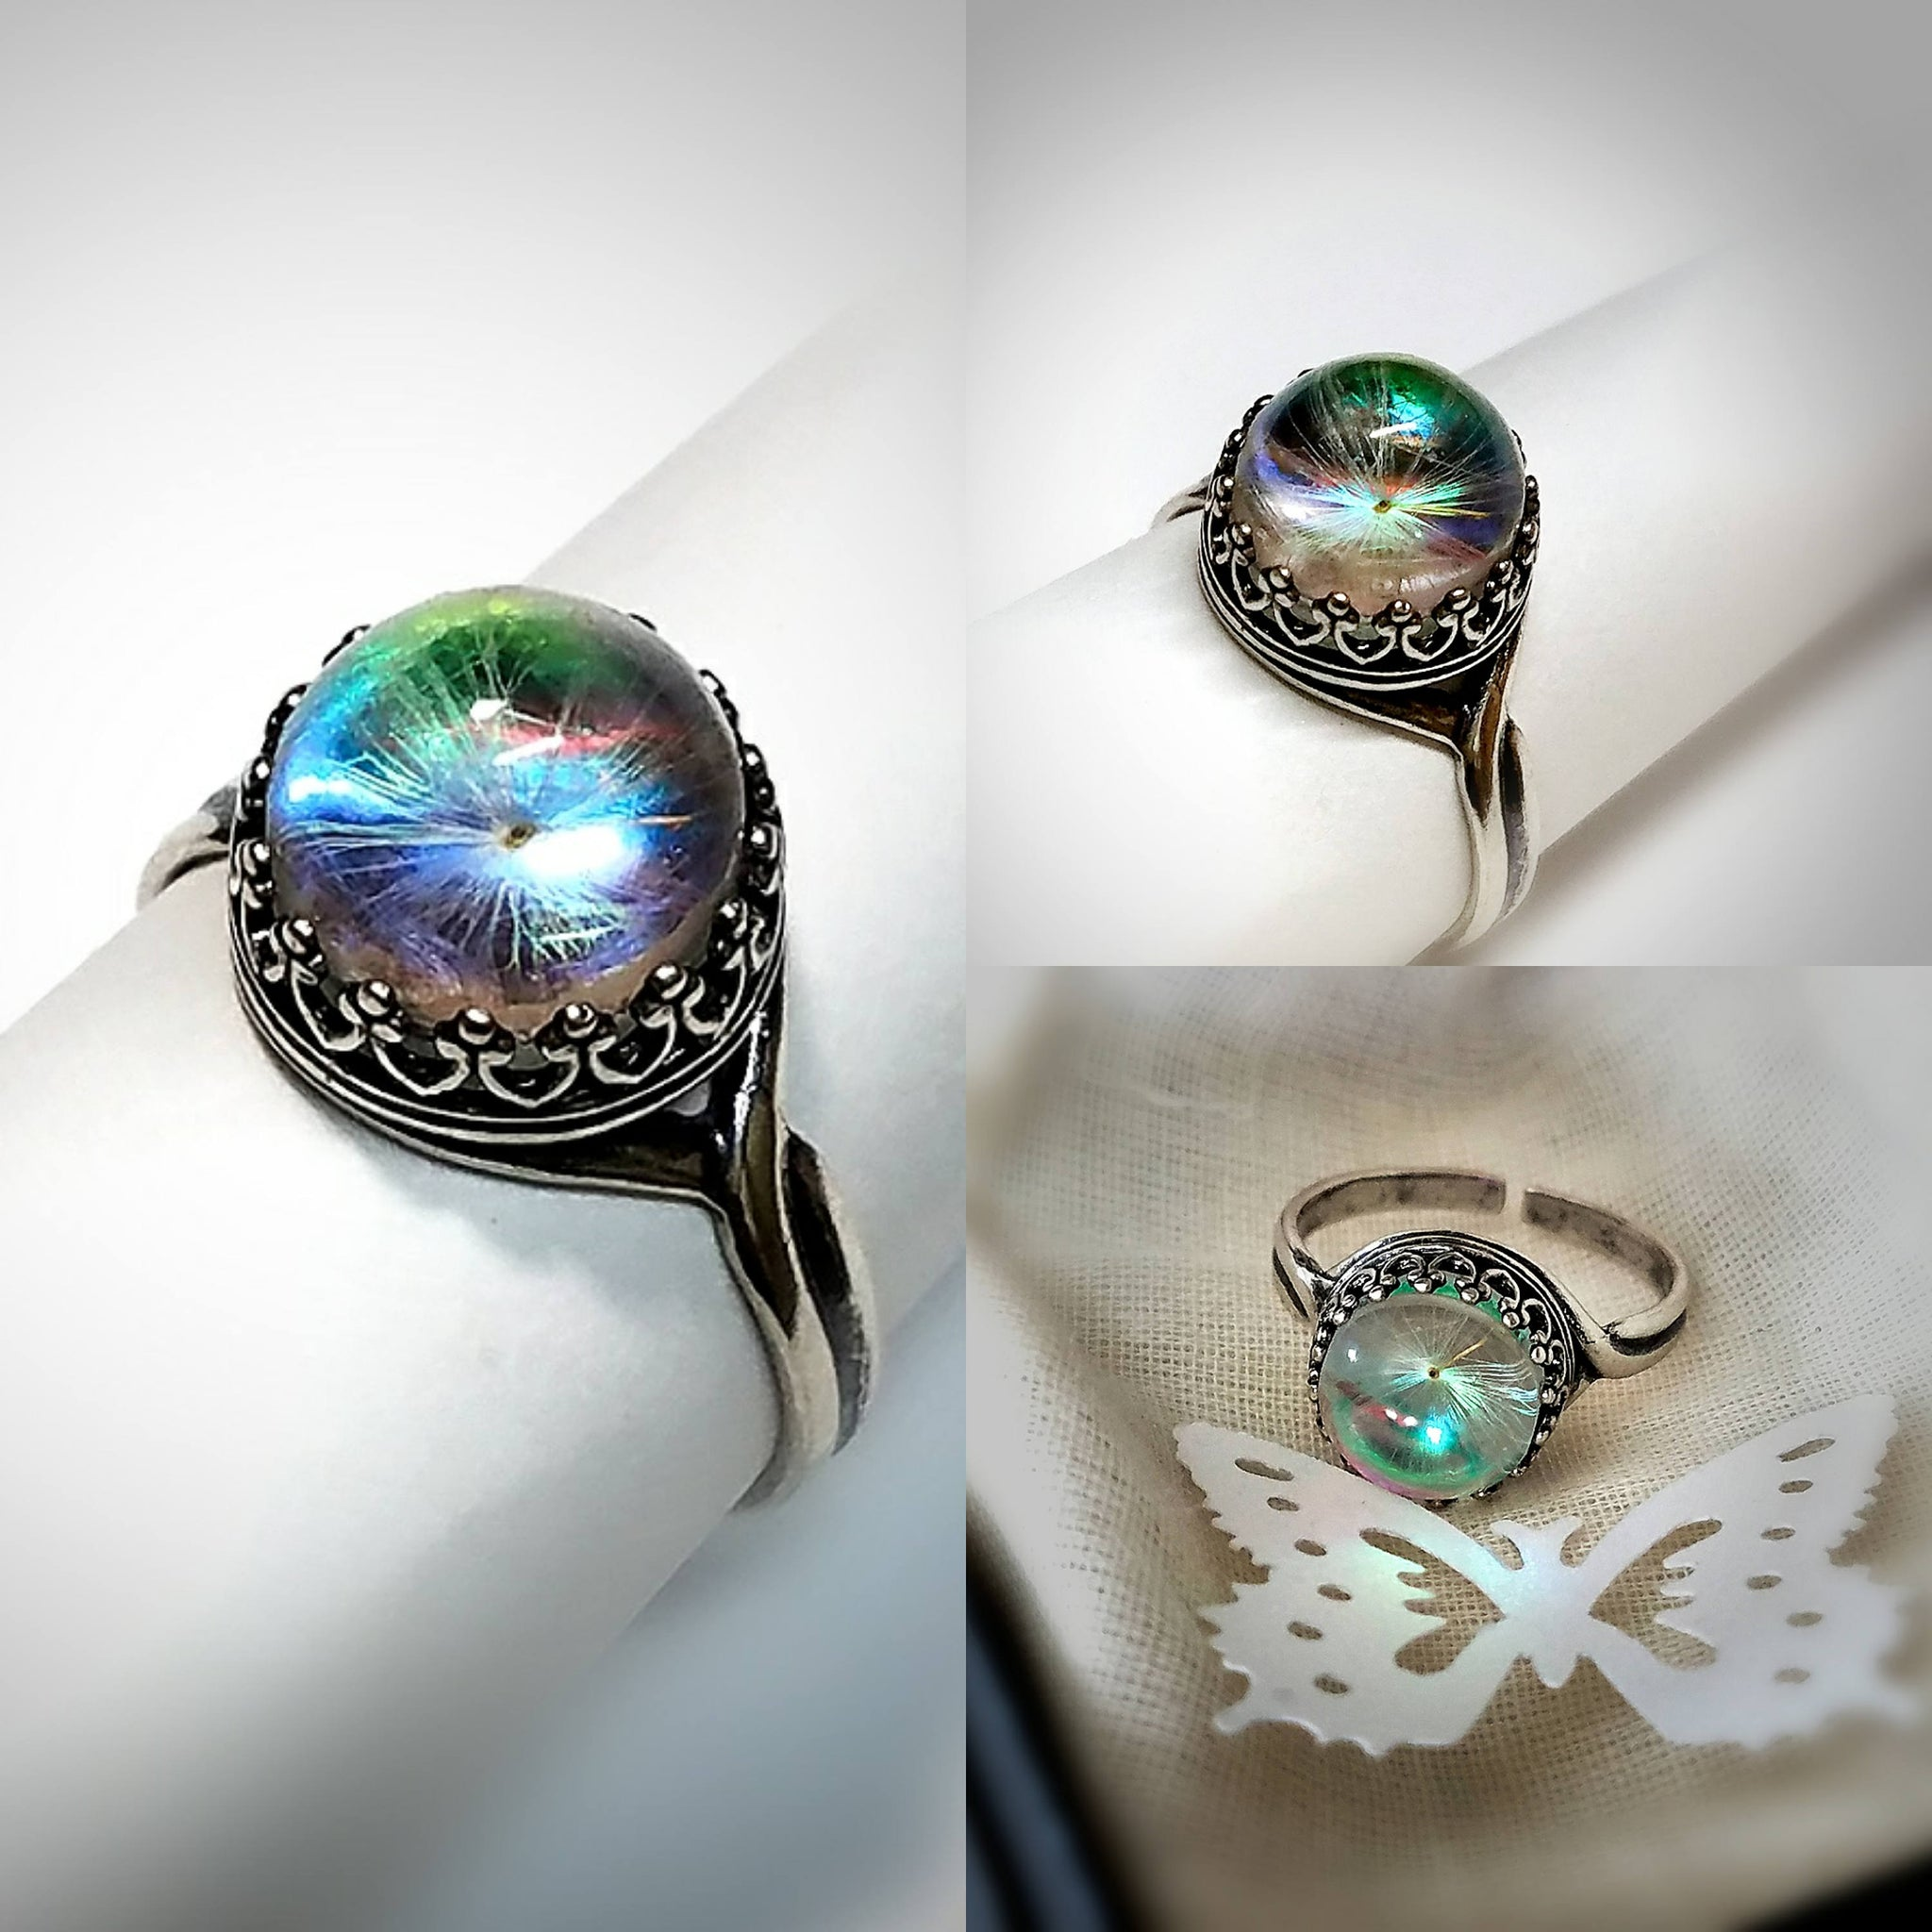 Tiny Wishes Ring Dandelion Seed Jewelry